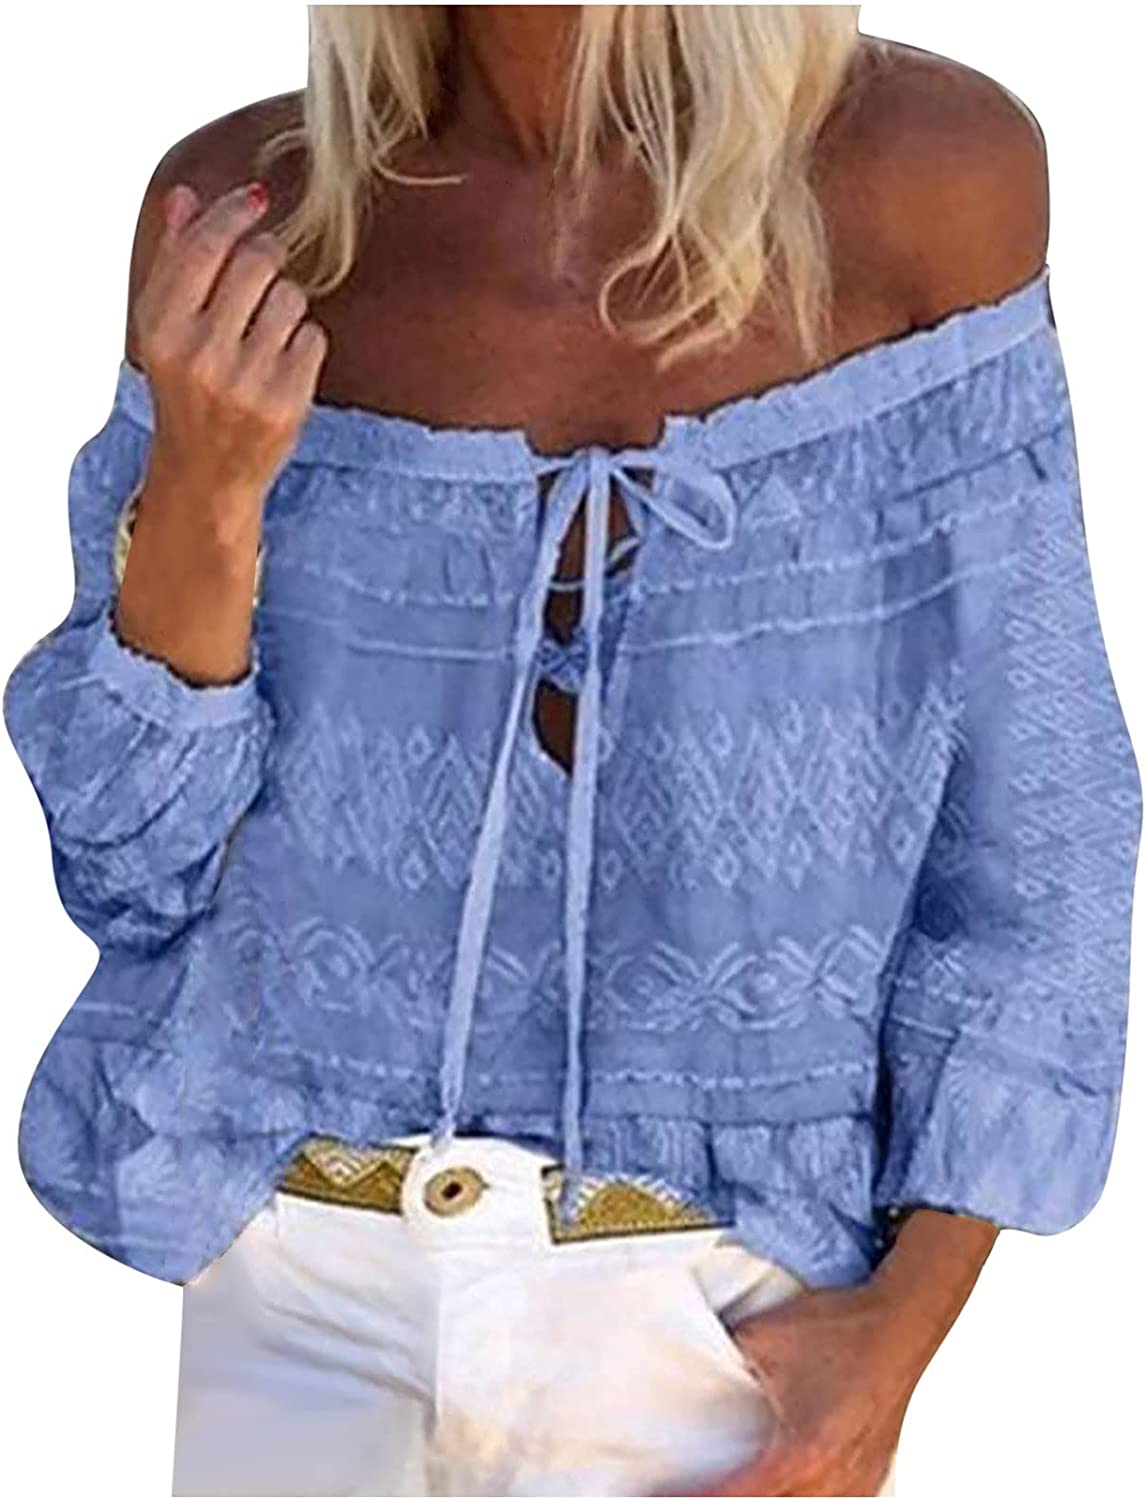 Blouses for Women Floral Print One-Line Neck Long Sleeve Ladies Fashion Autumn Loose Soft Pullover Tops